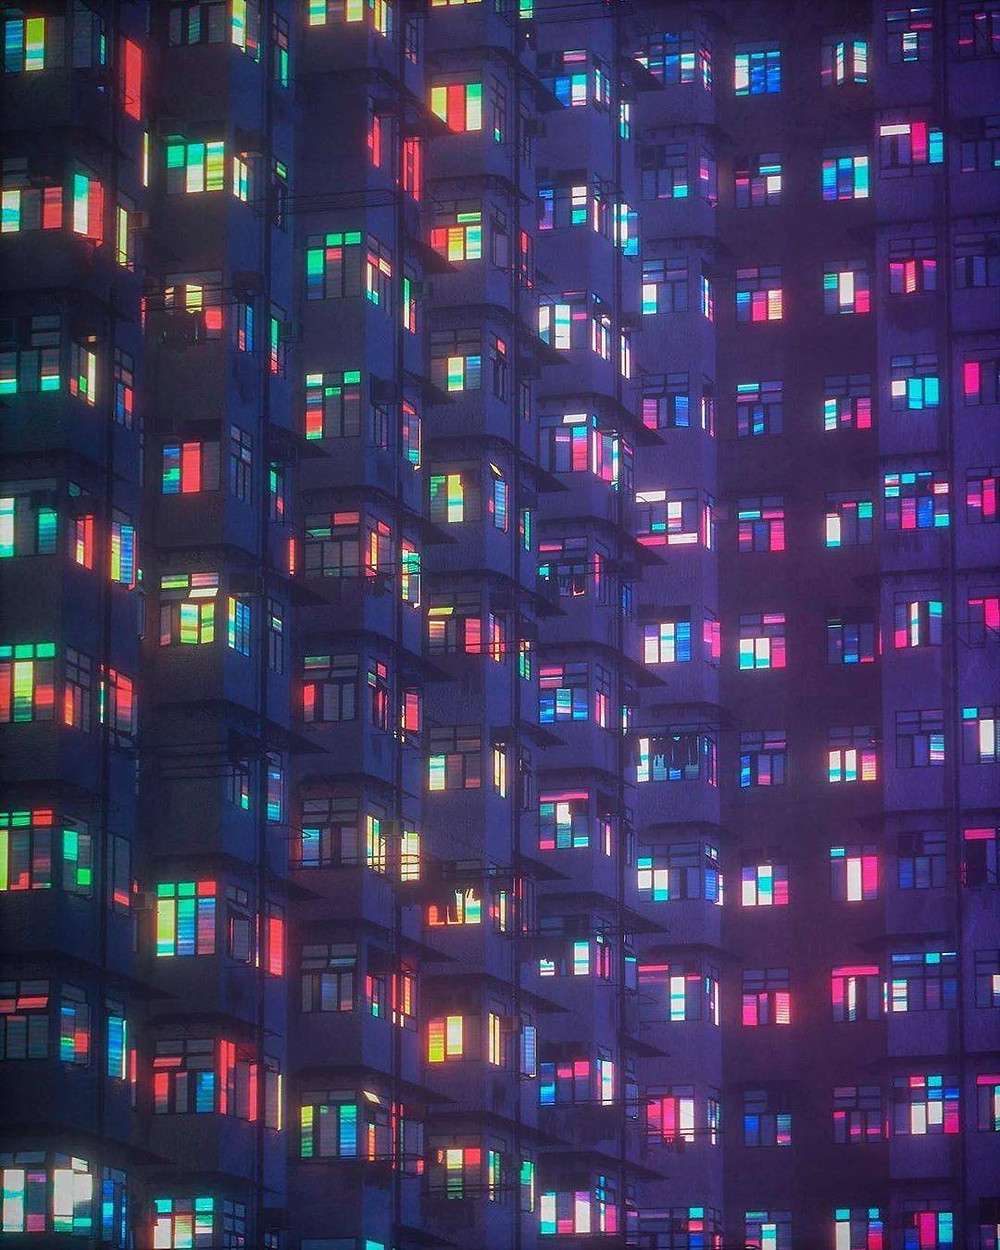 Apartments, digital art, scifi poem, astral poem